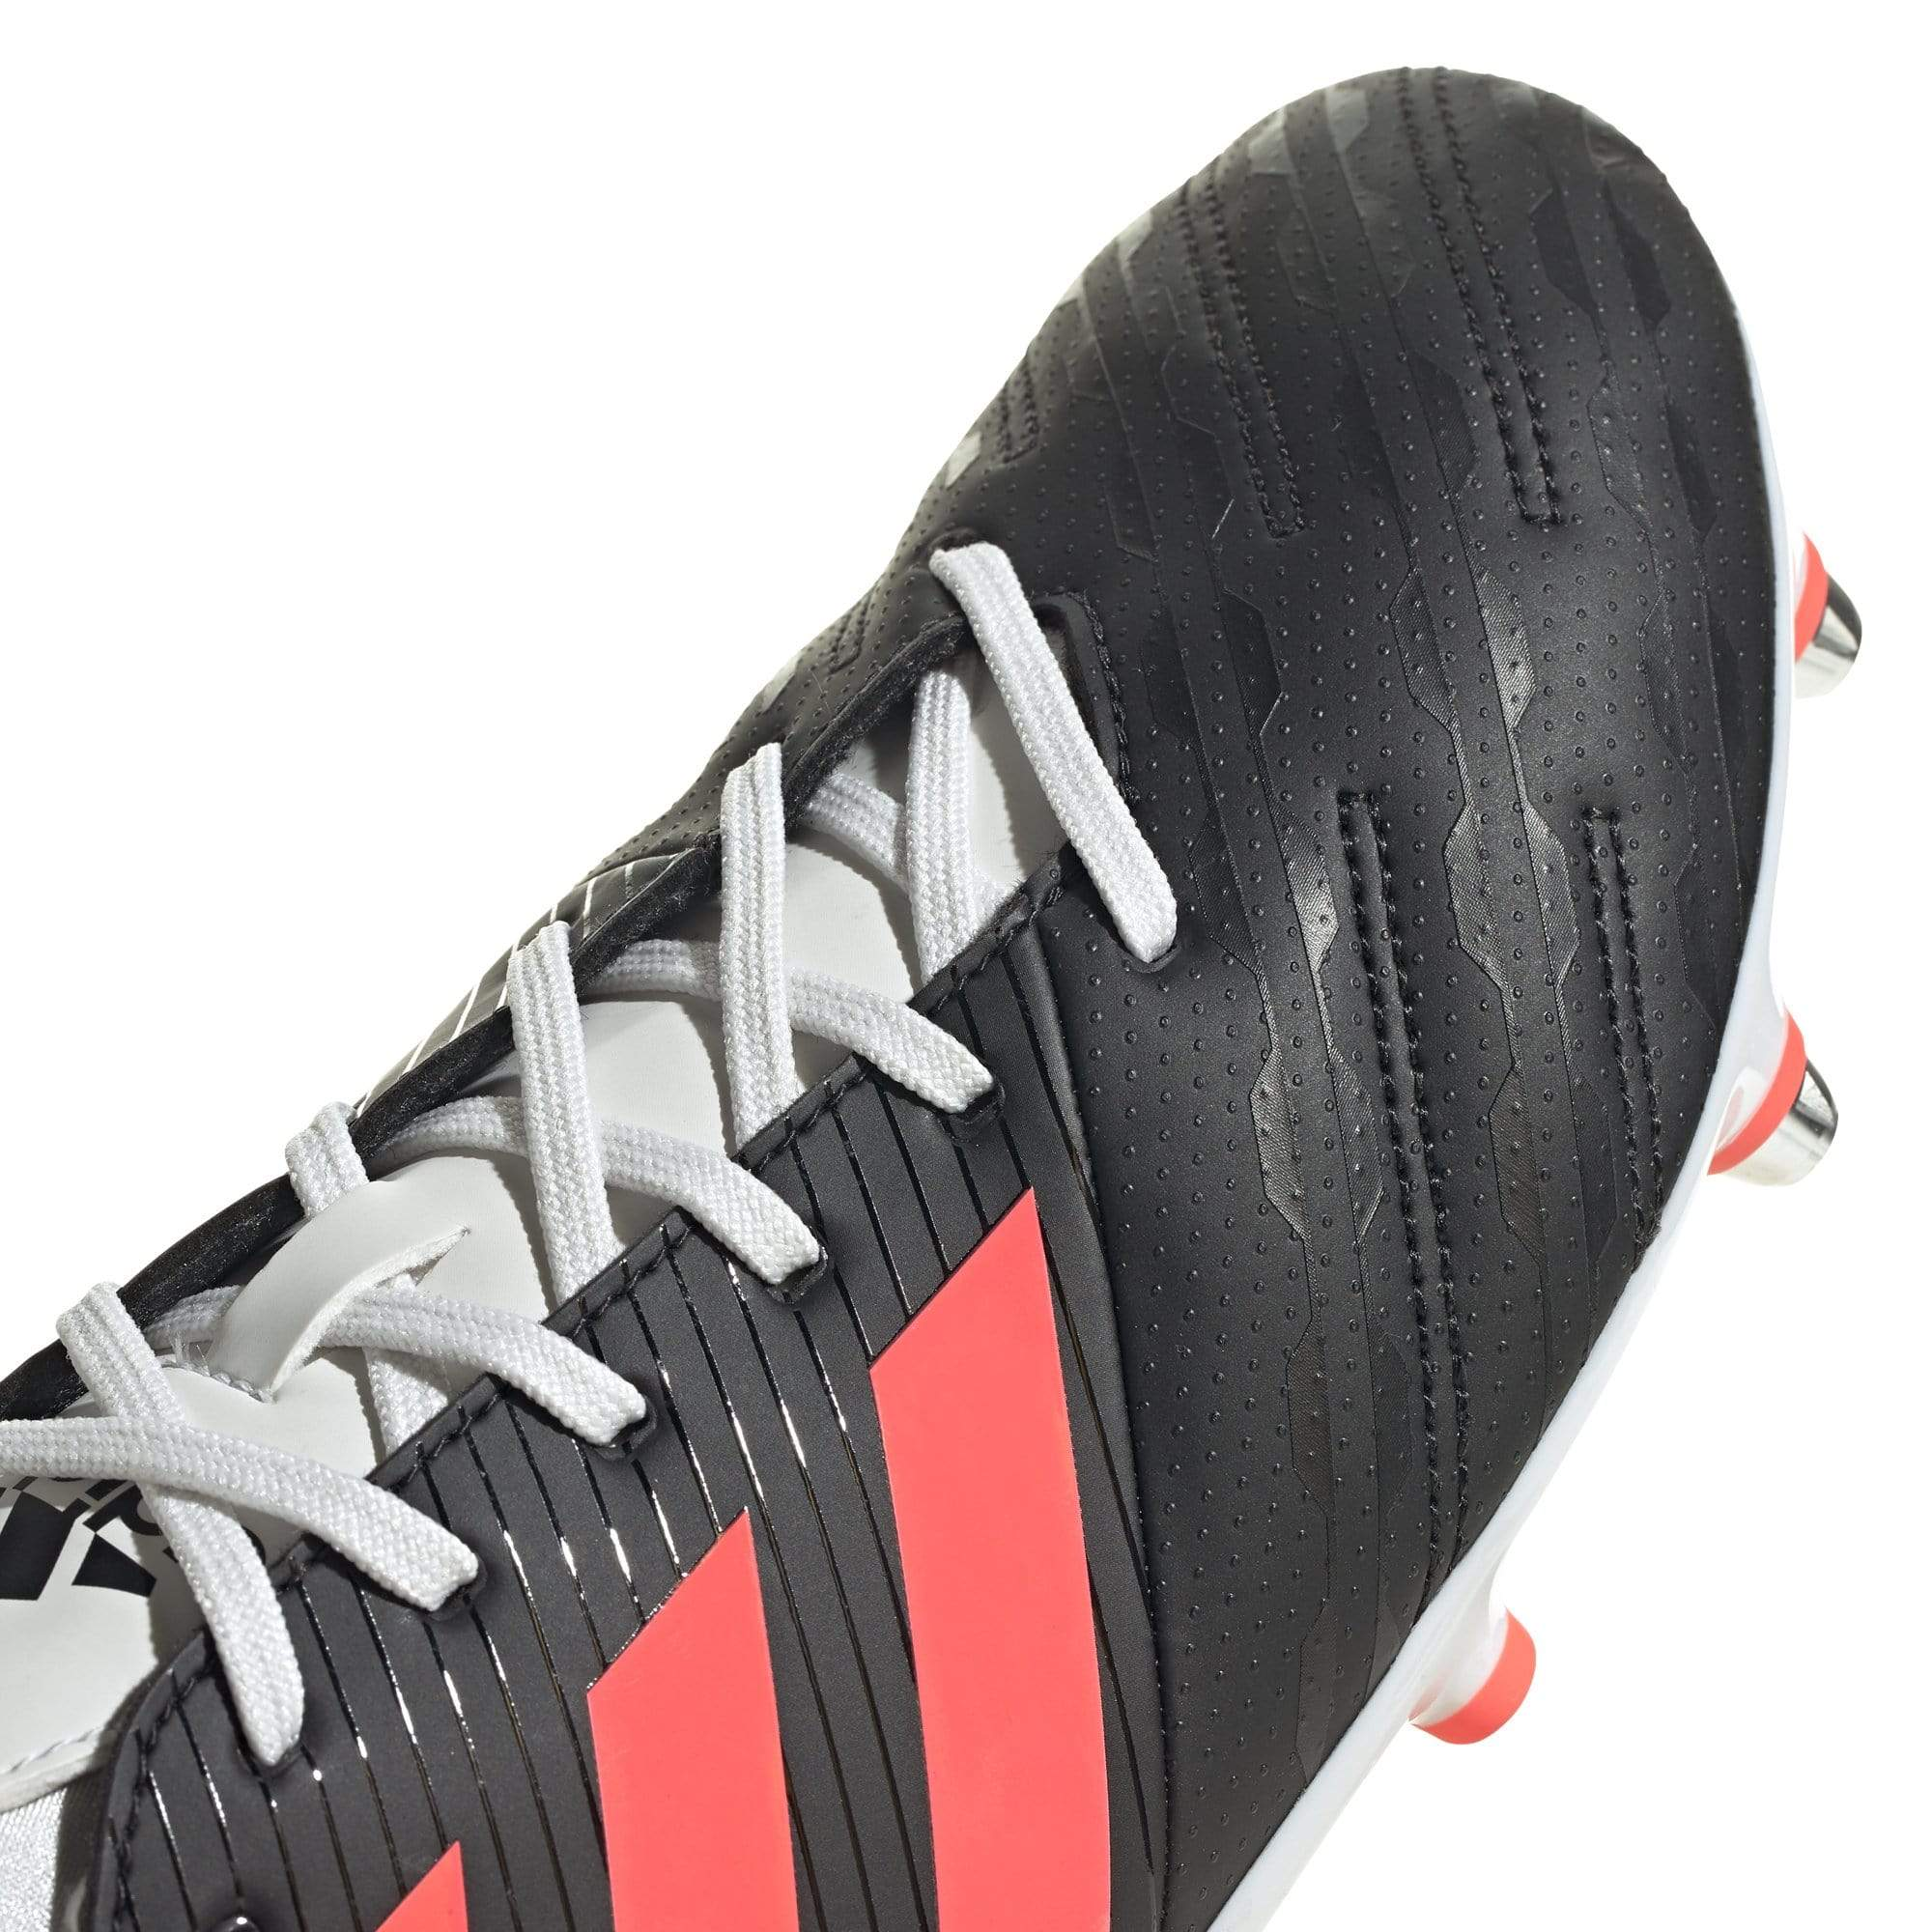 Front of Adidas Rugby Boot Black Toe, White Laces, Pink Stripes